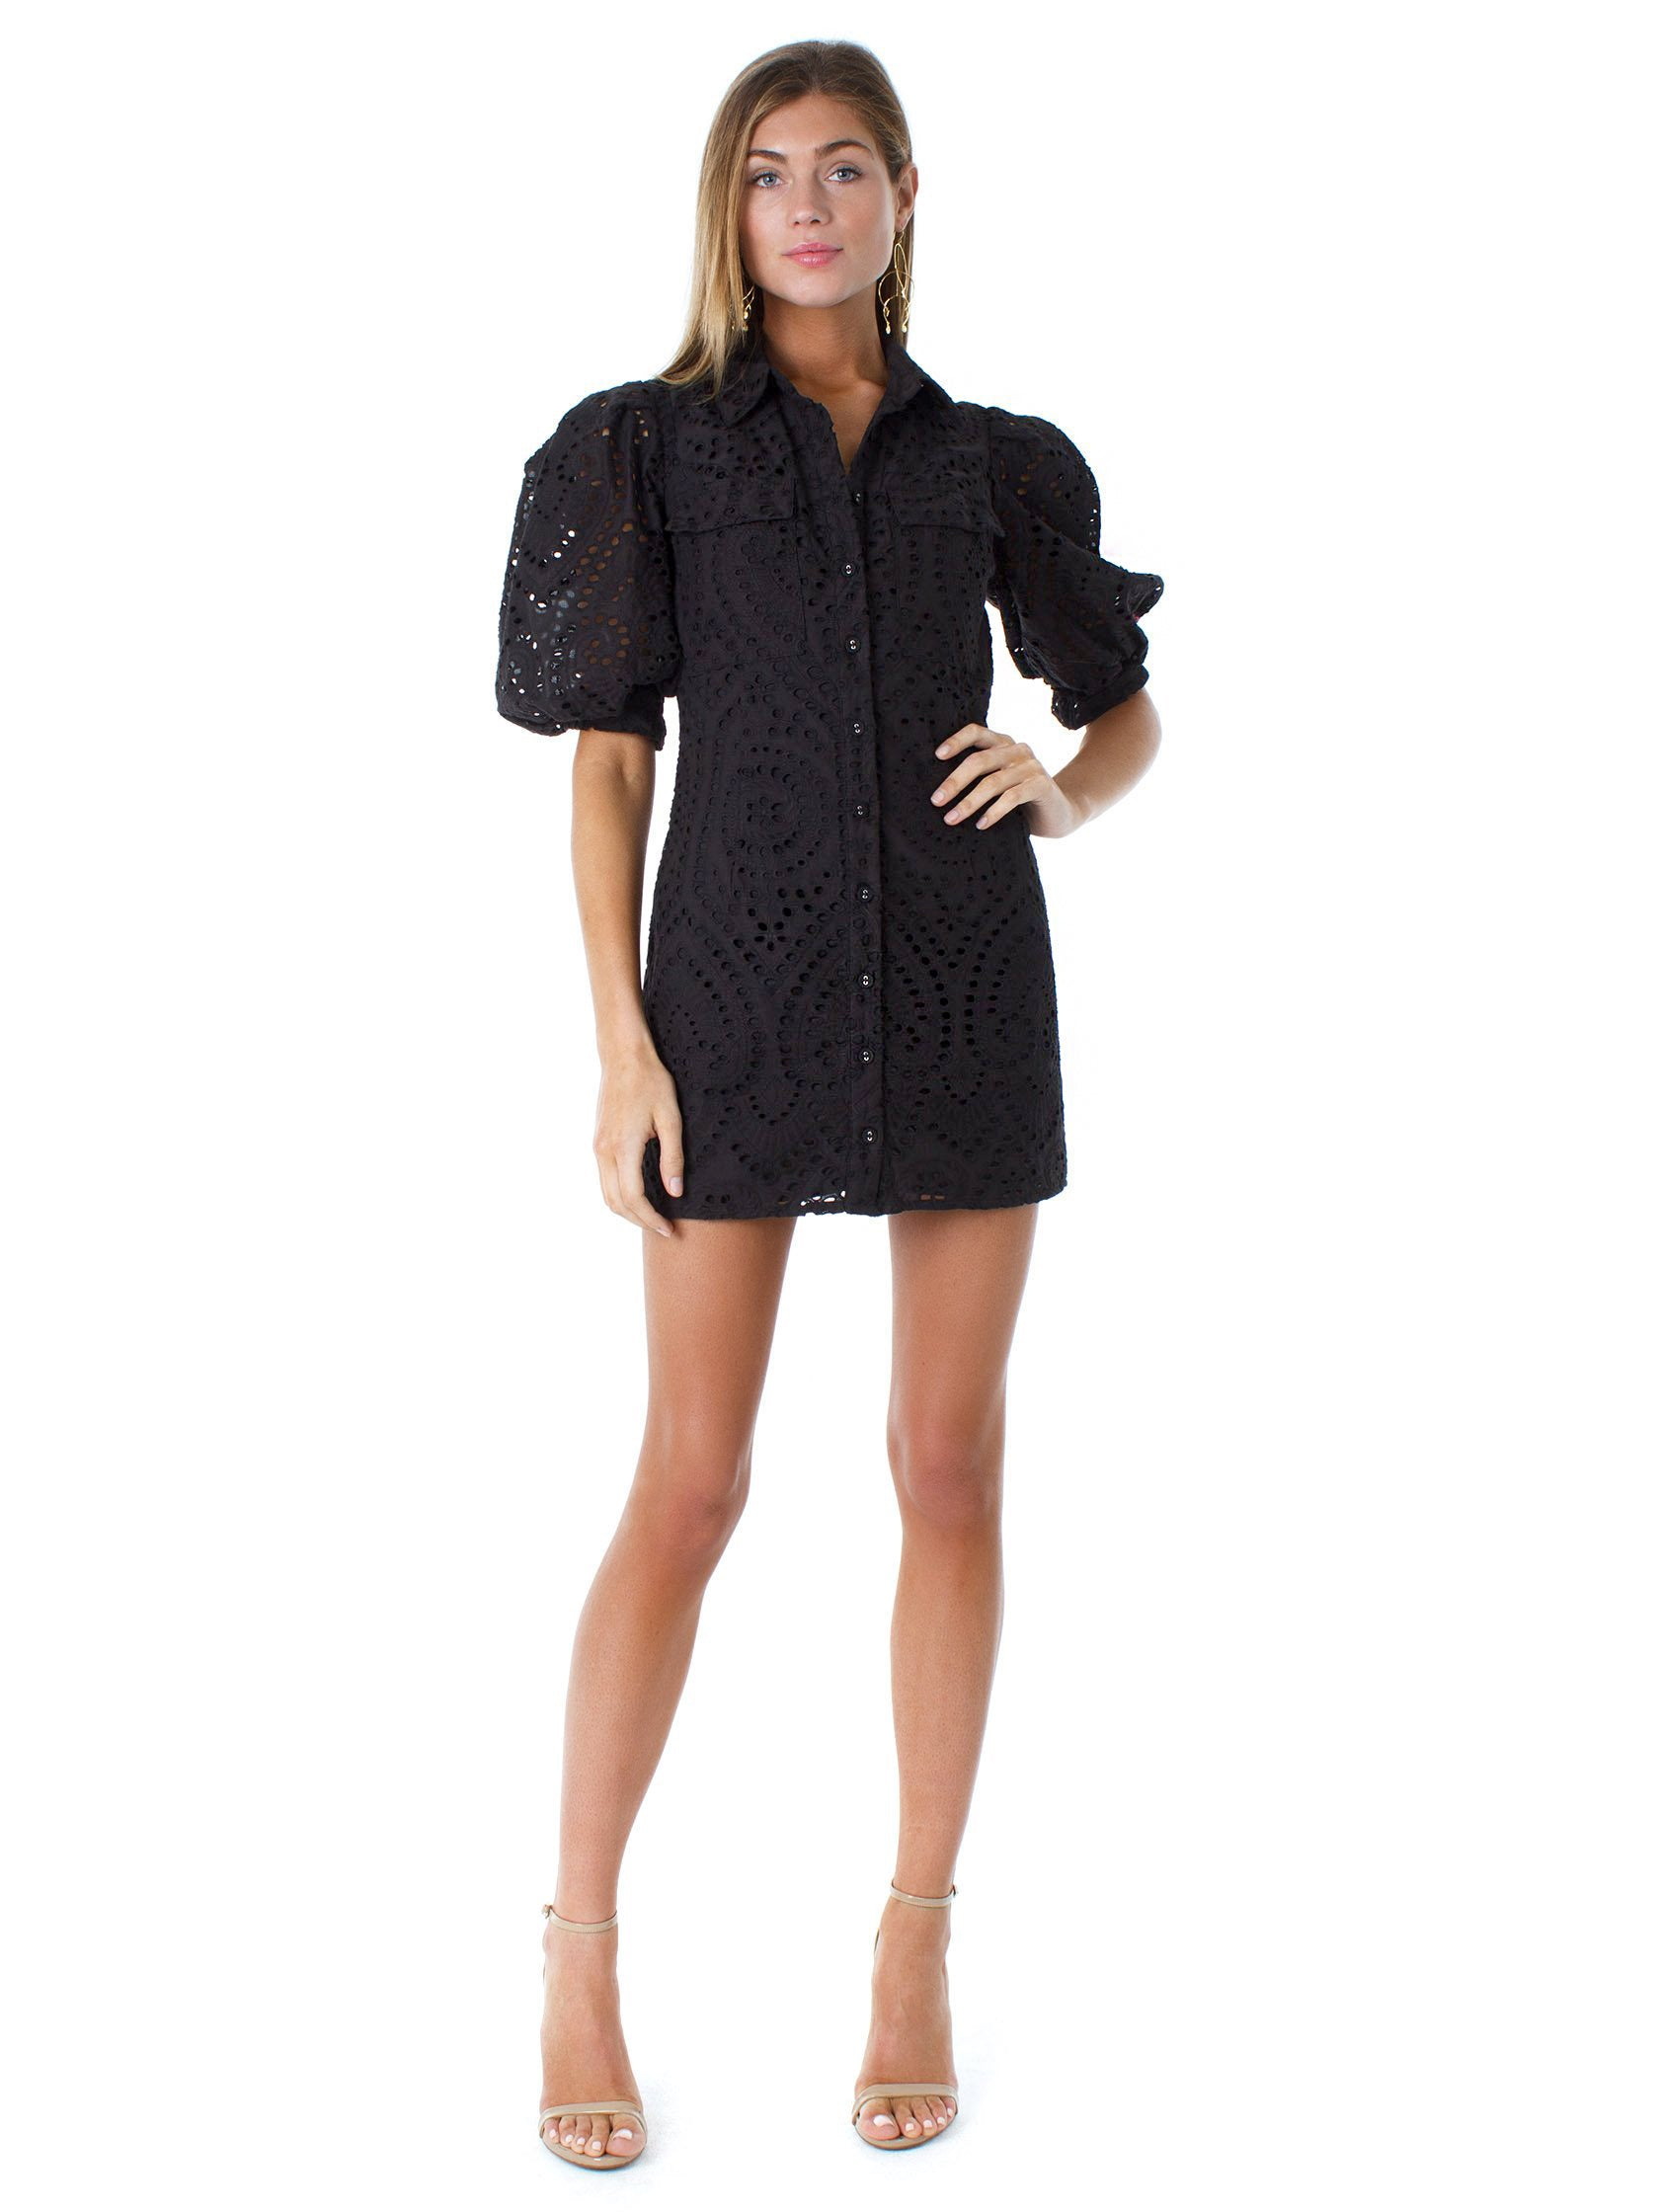 Women outfit in a dress rental from BARDOT called Brody Mini Dress